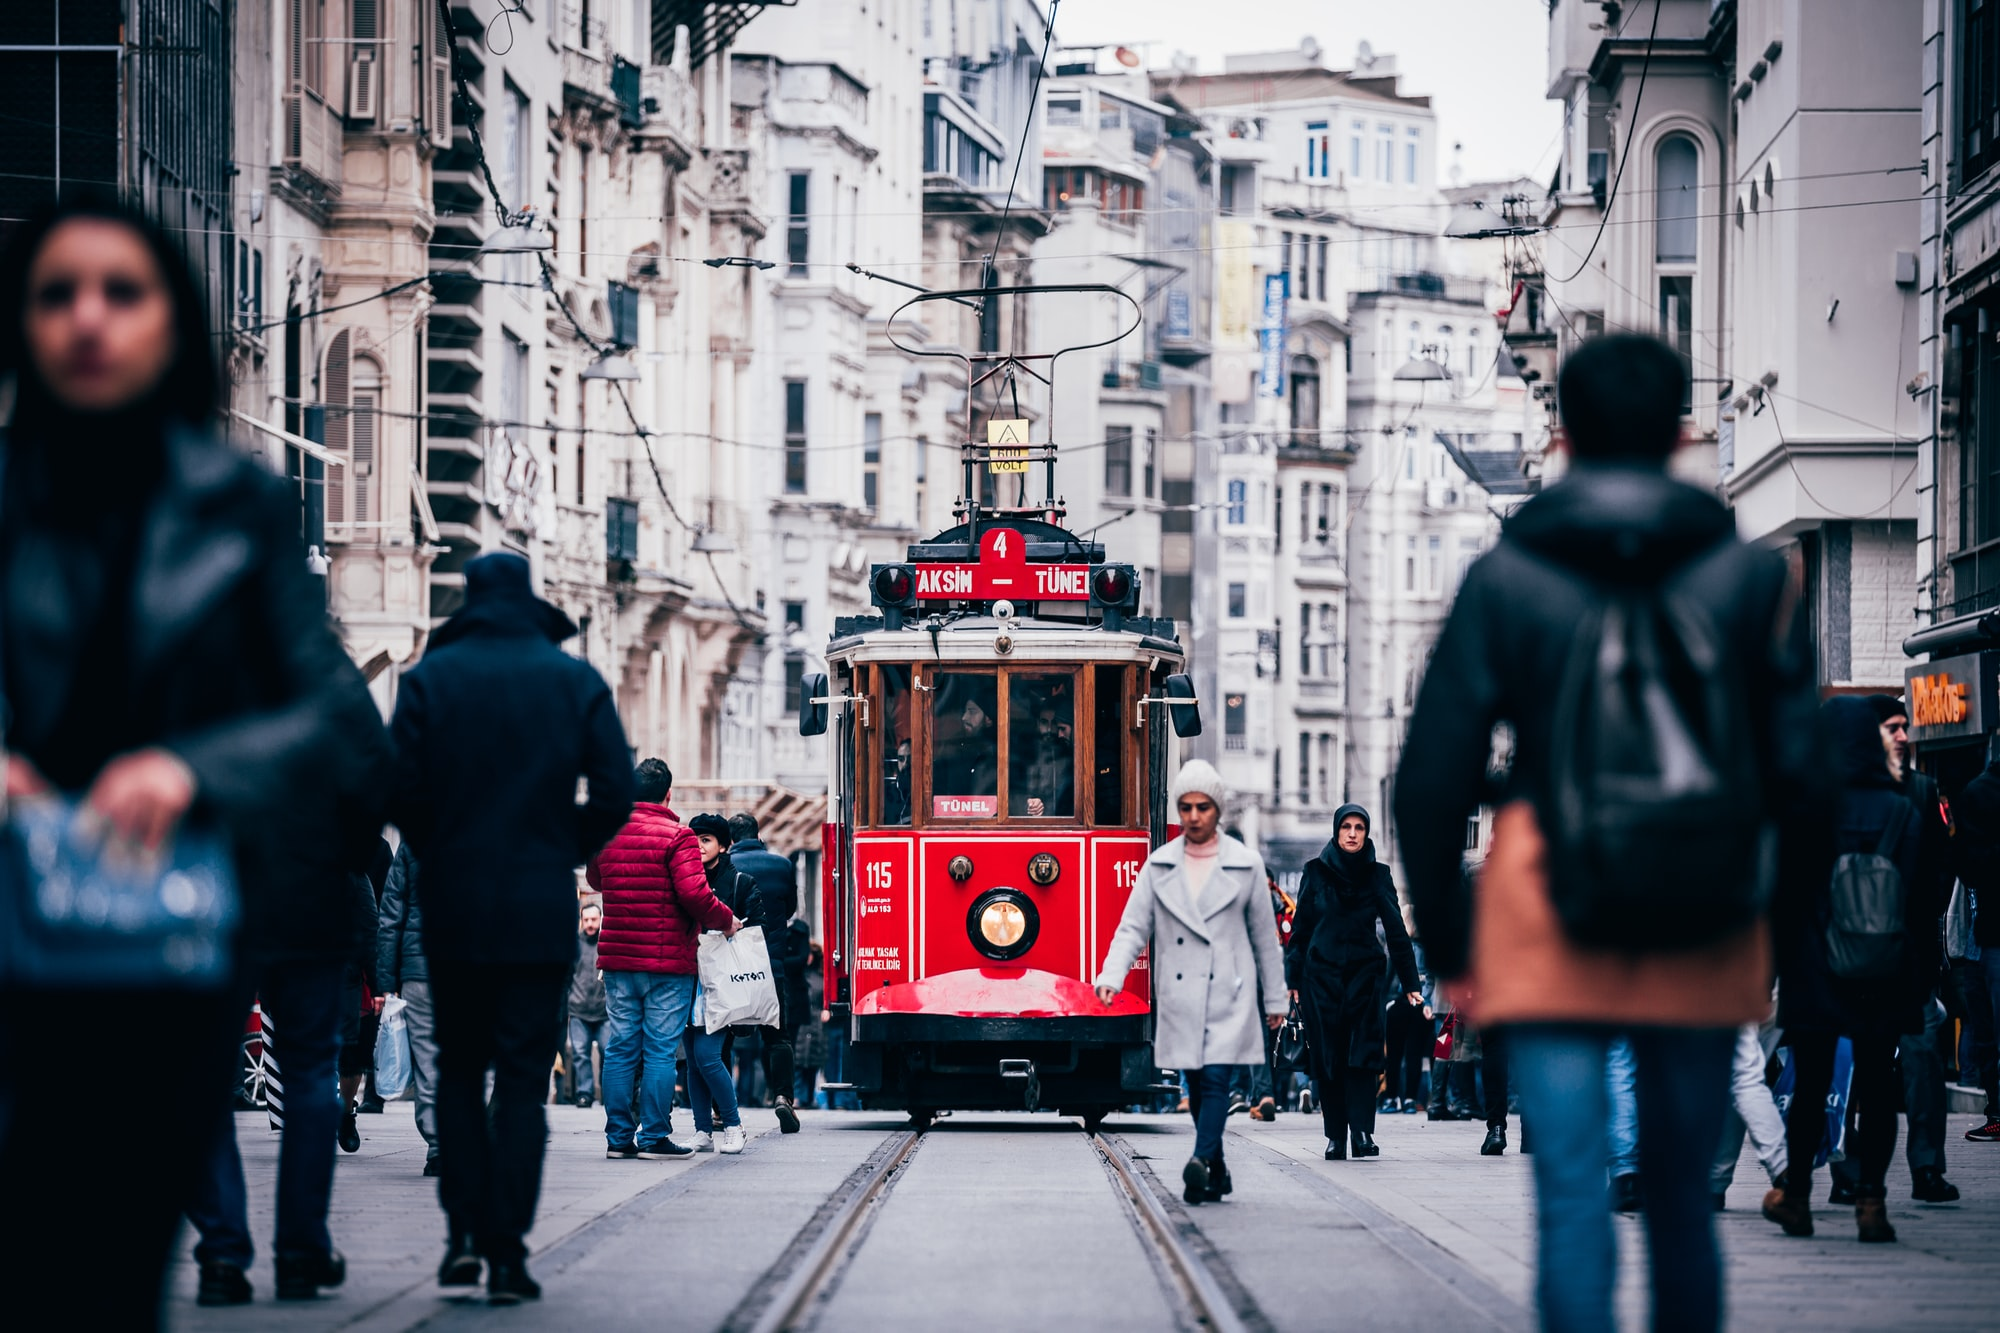 I was walking through the Istanbul shopping area, Taksim. In Taksim they use these